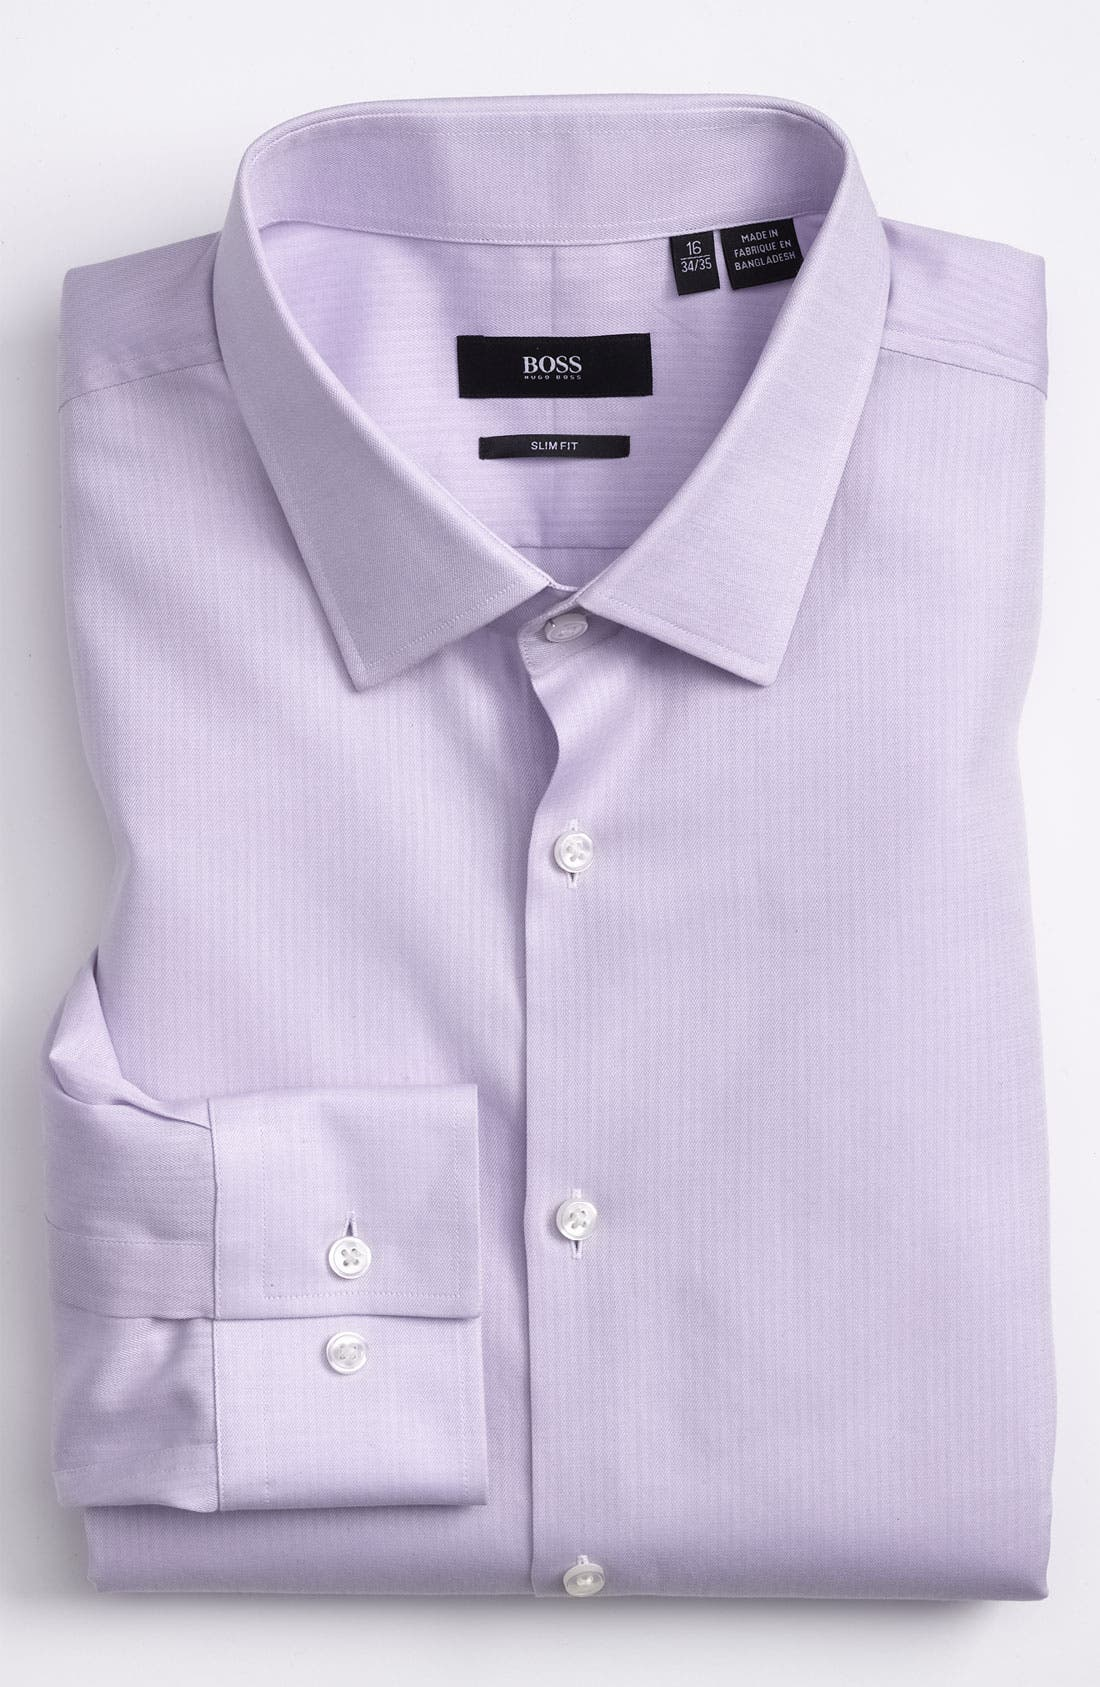 Alternate Image 1 Selected - BOSS 'Jenno' Slim Fit Herringbone Dress Shirt